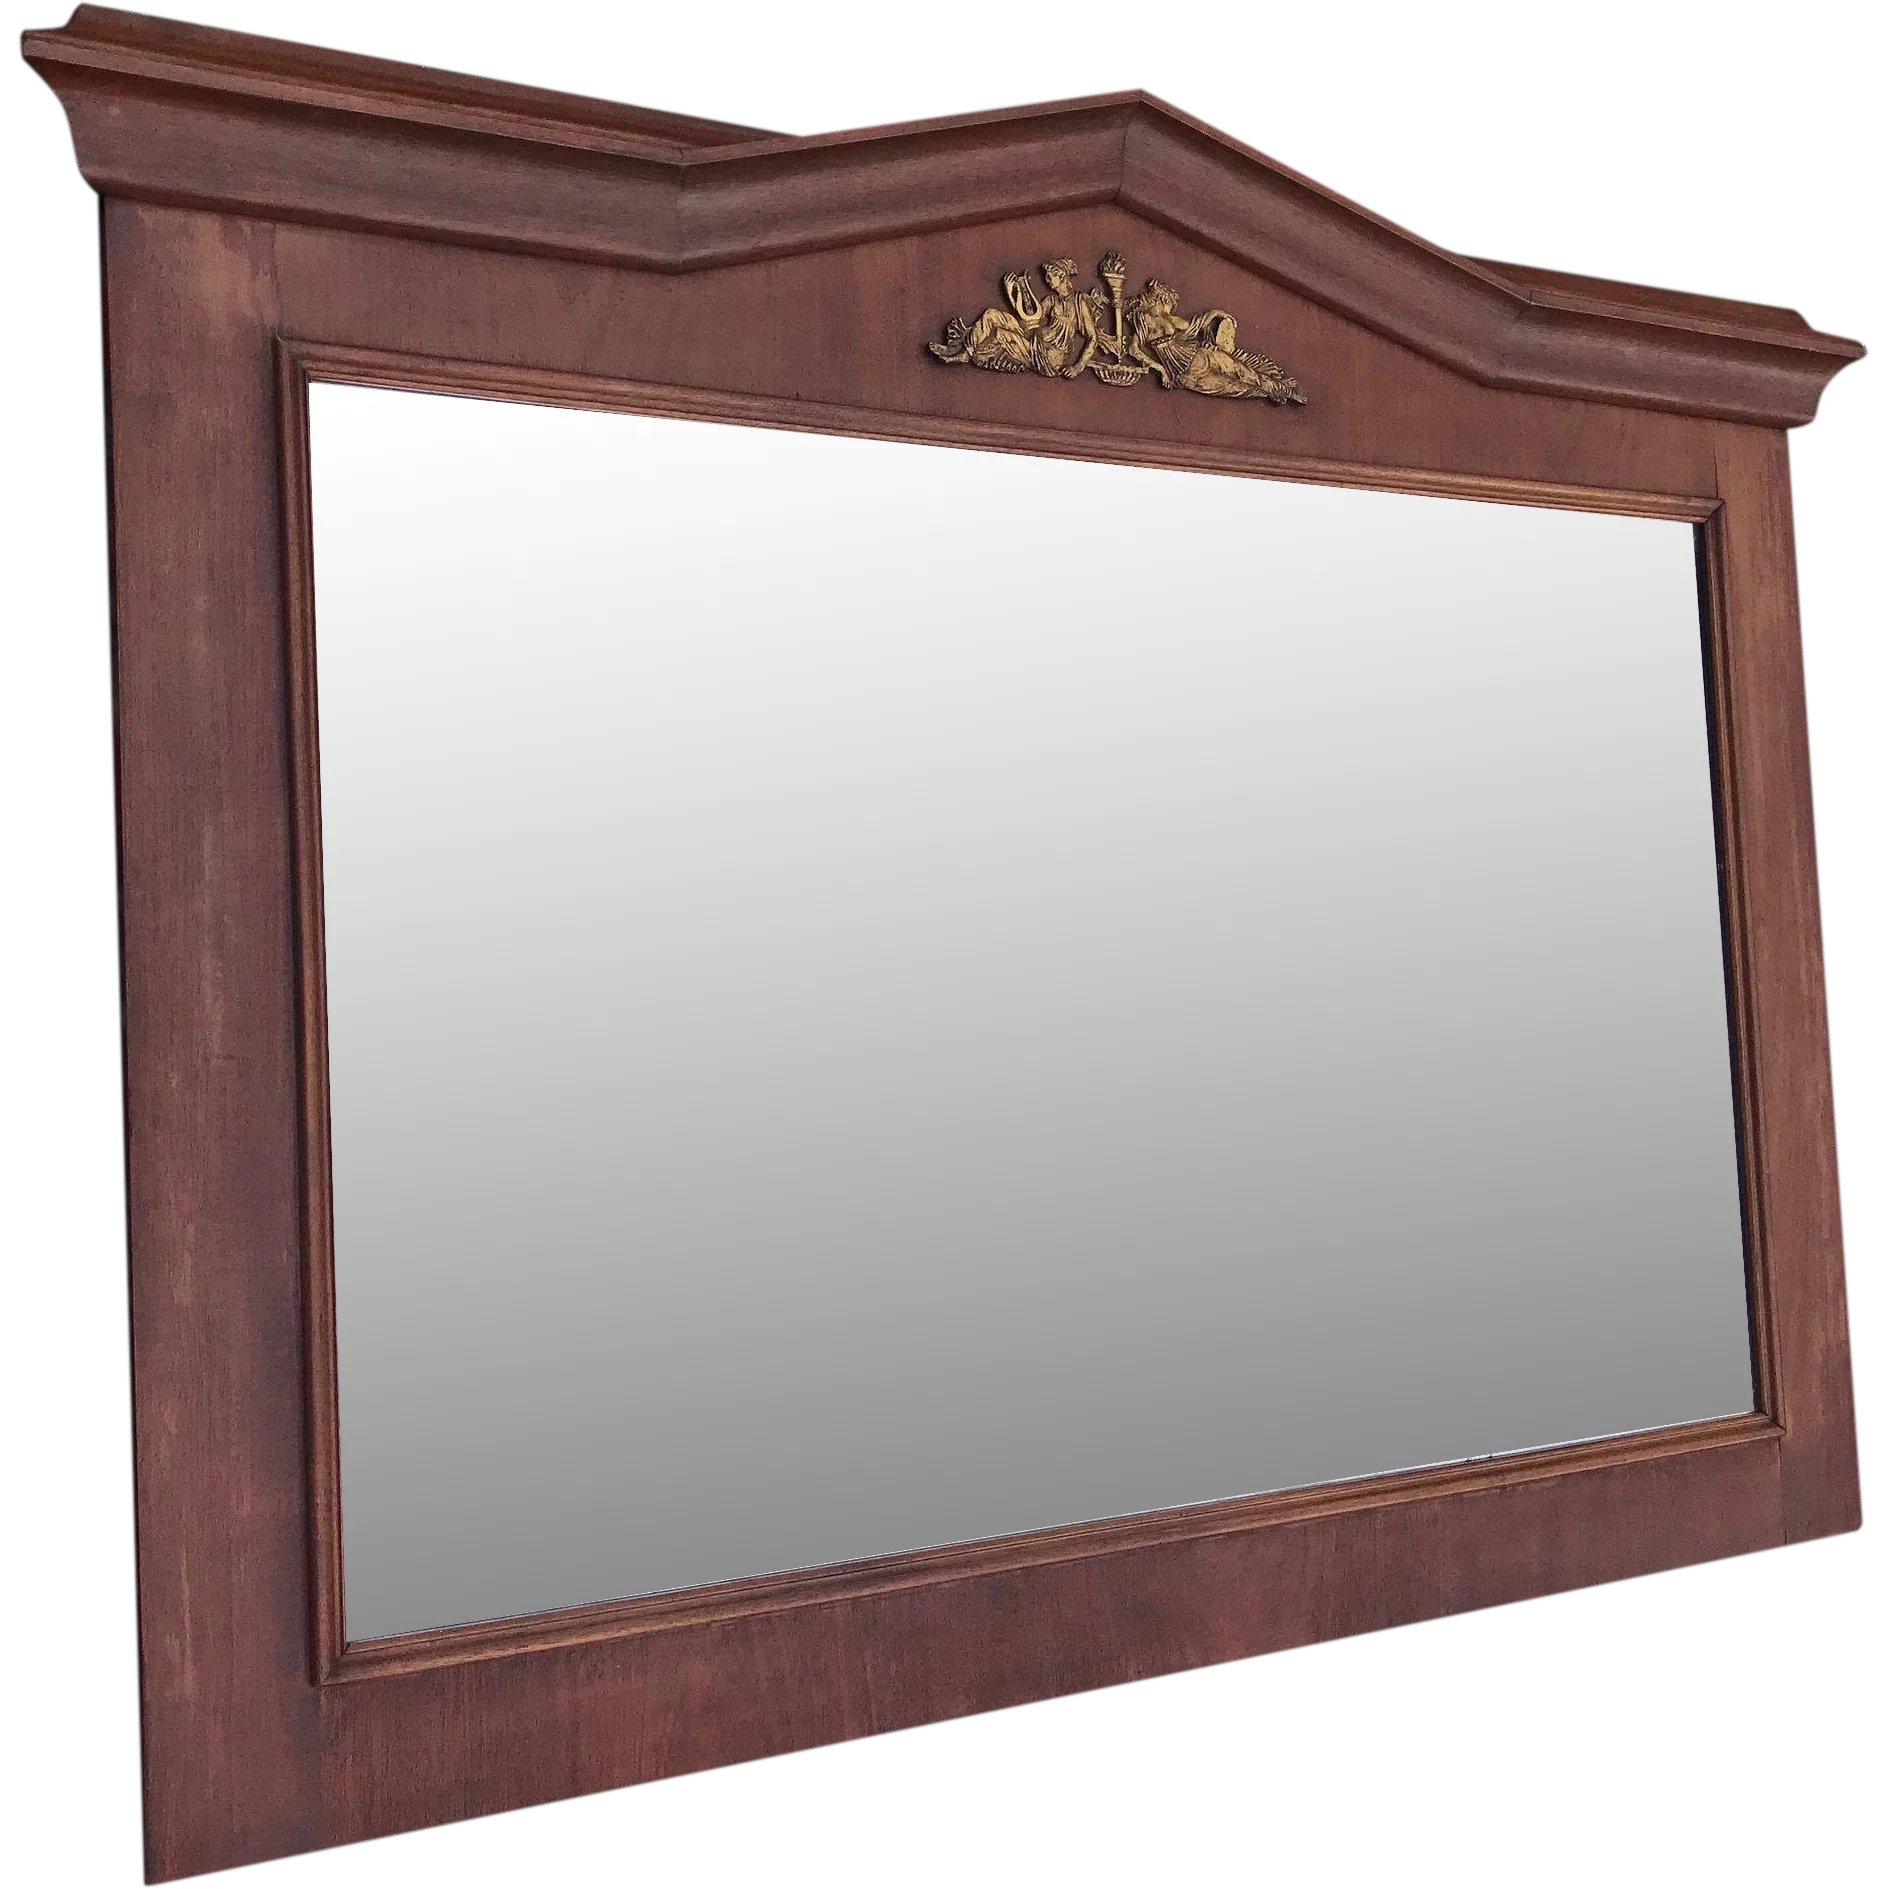 Antique Empire Style Mirror in Mahogany Frame with Bronze : Europe ...